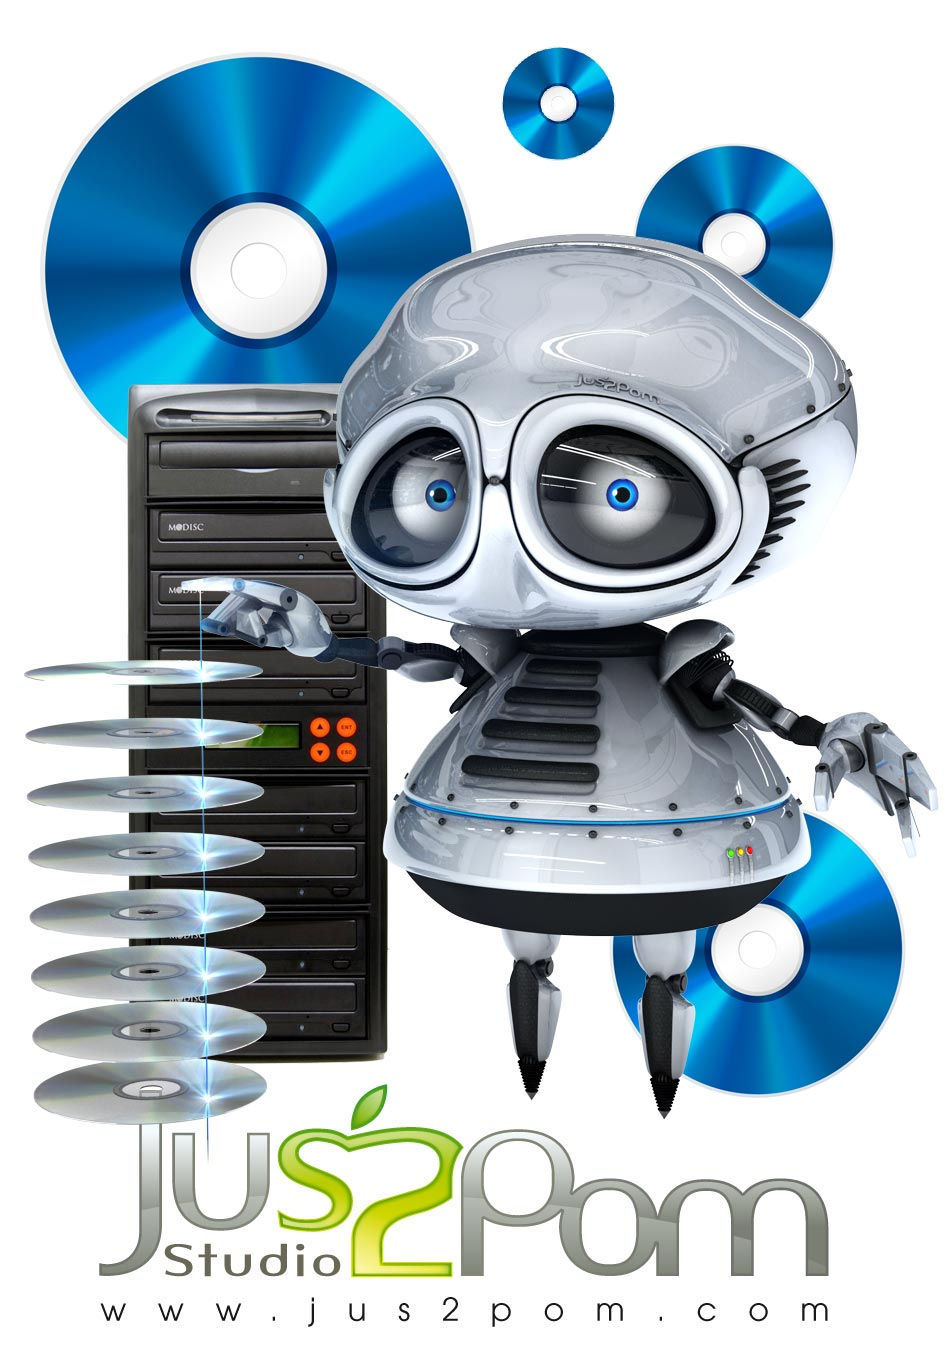 jus2pom-robot-duplication-CD-dvd-bluray-v2